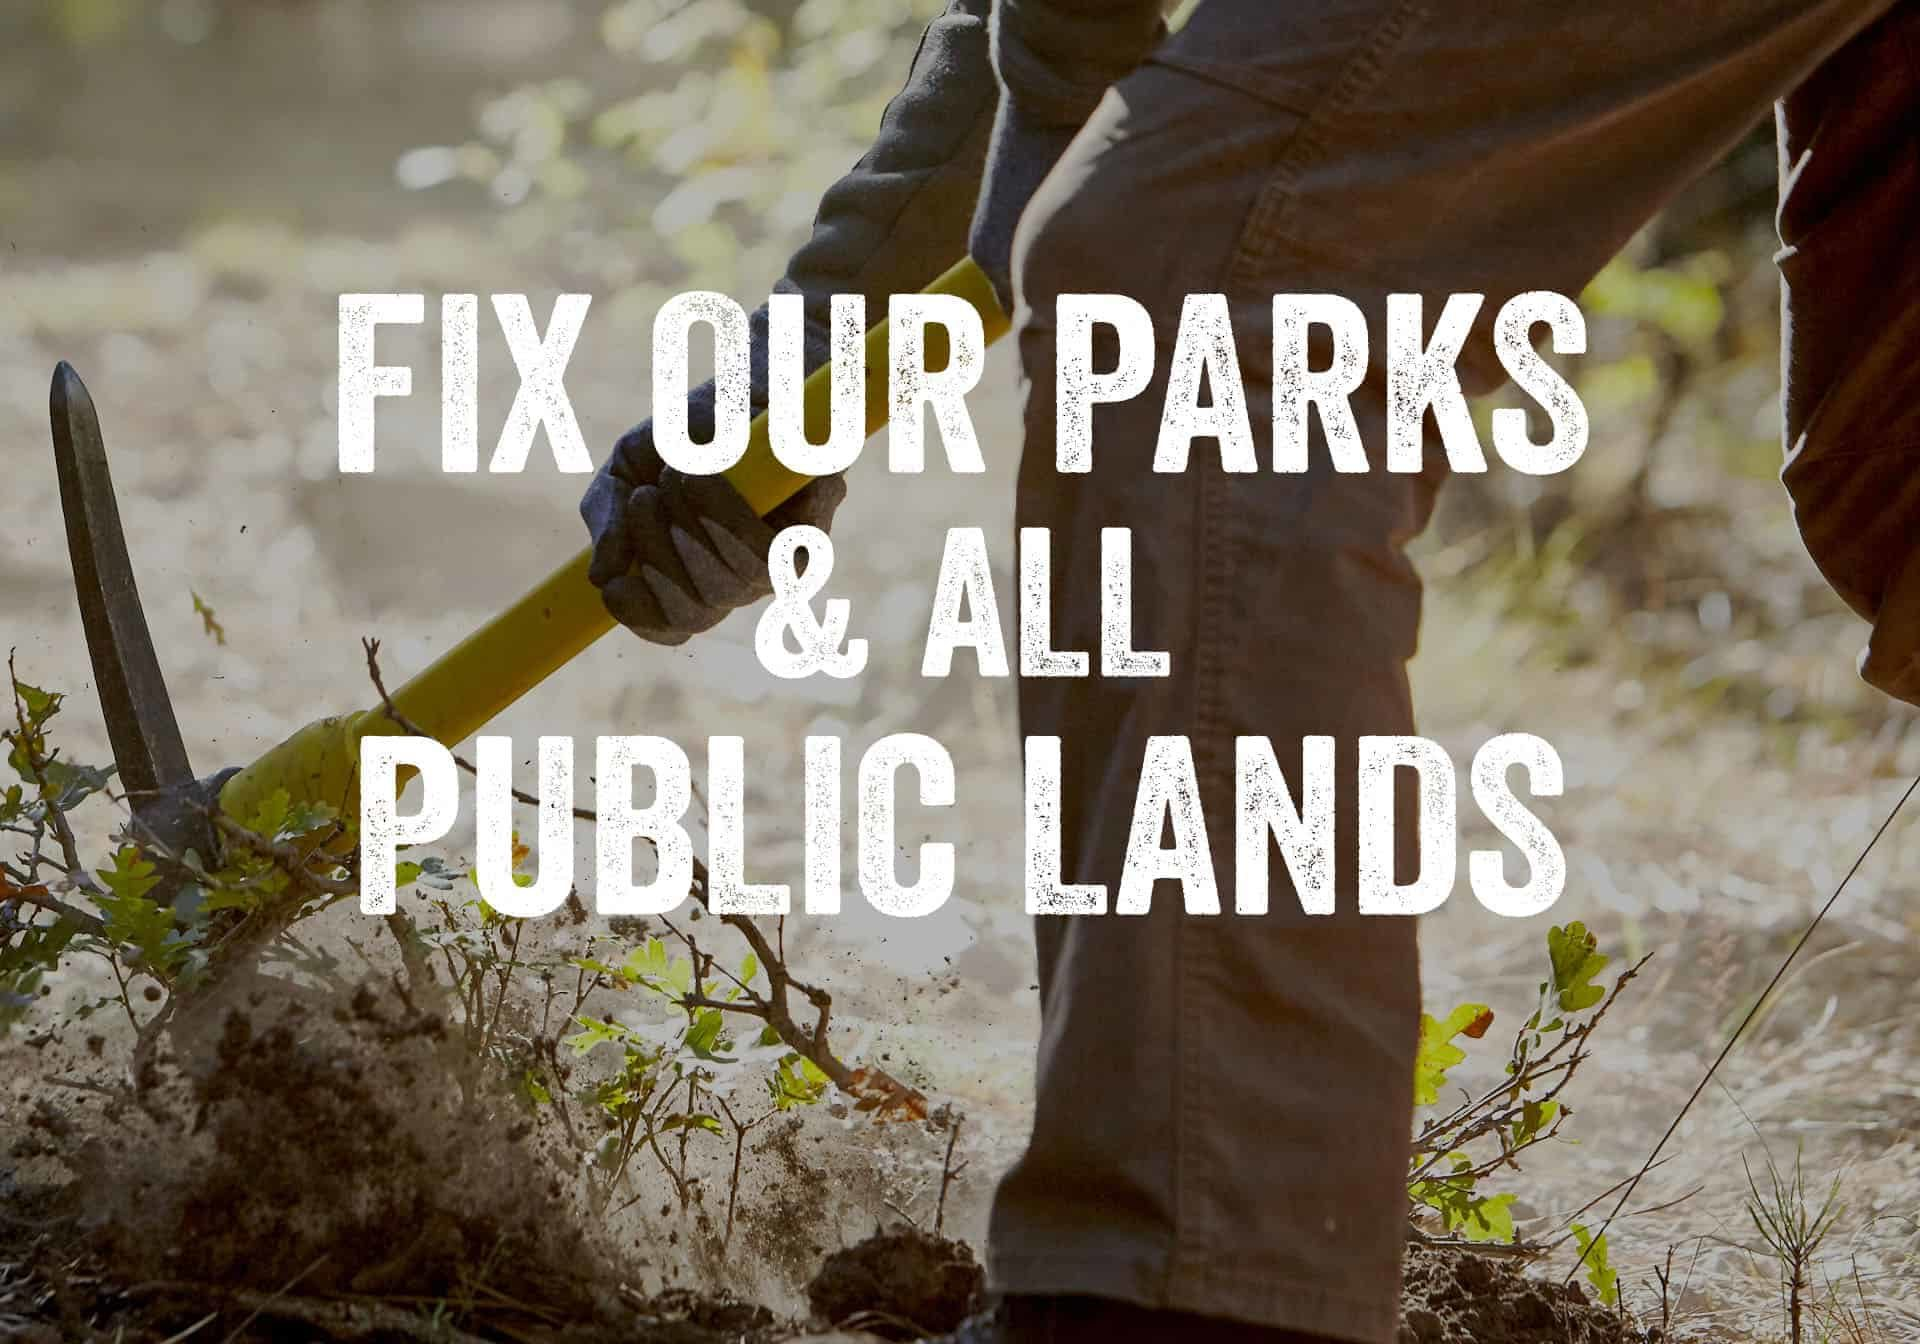 Fix Our Parks and All Public Lands Text. Image of volunteer doing trail work.